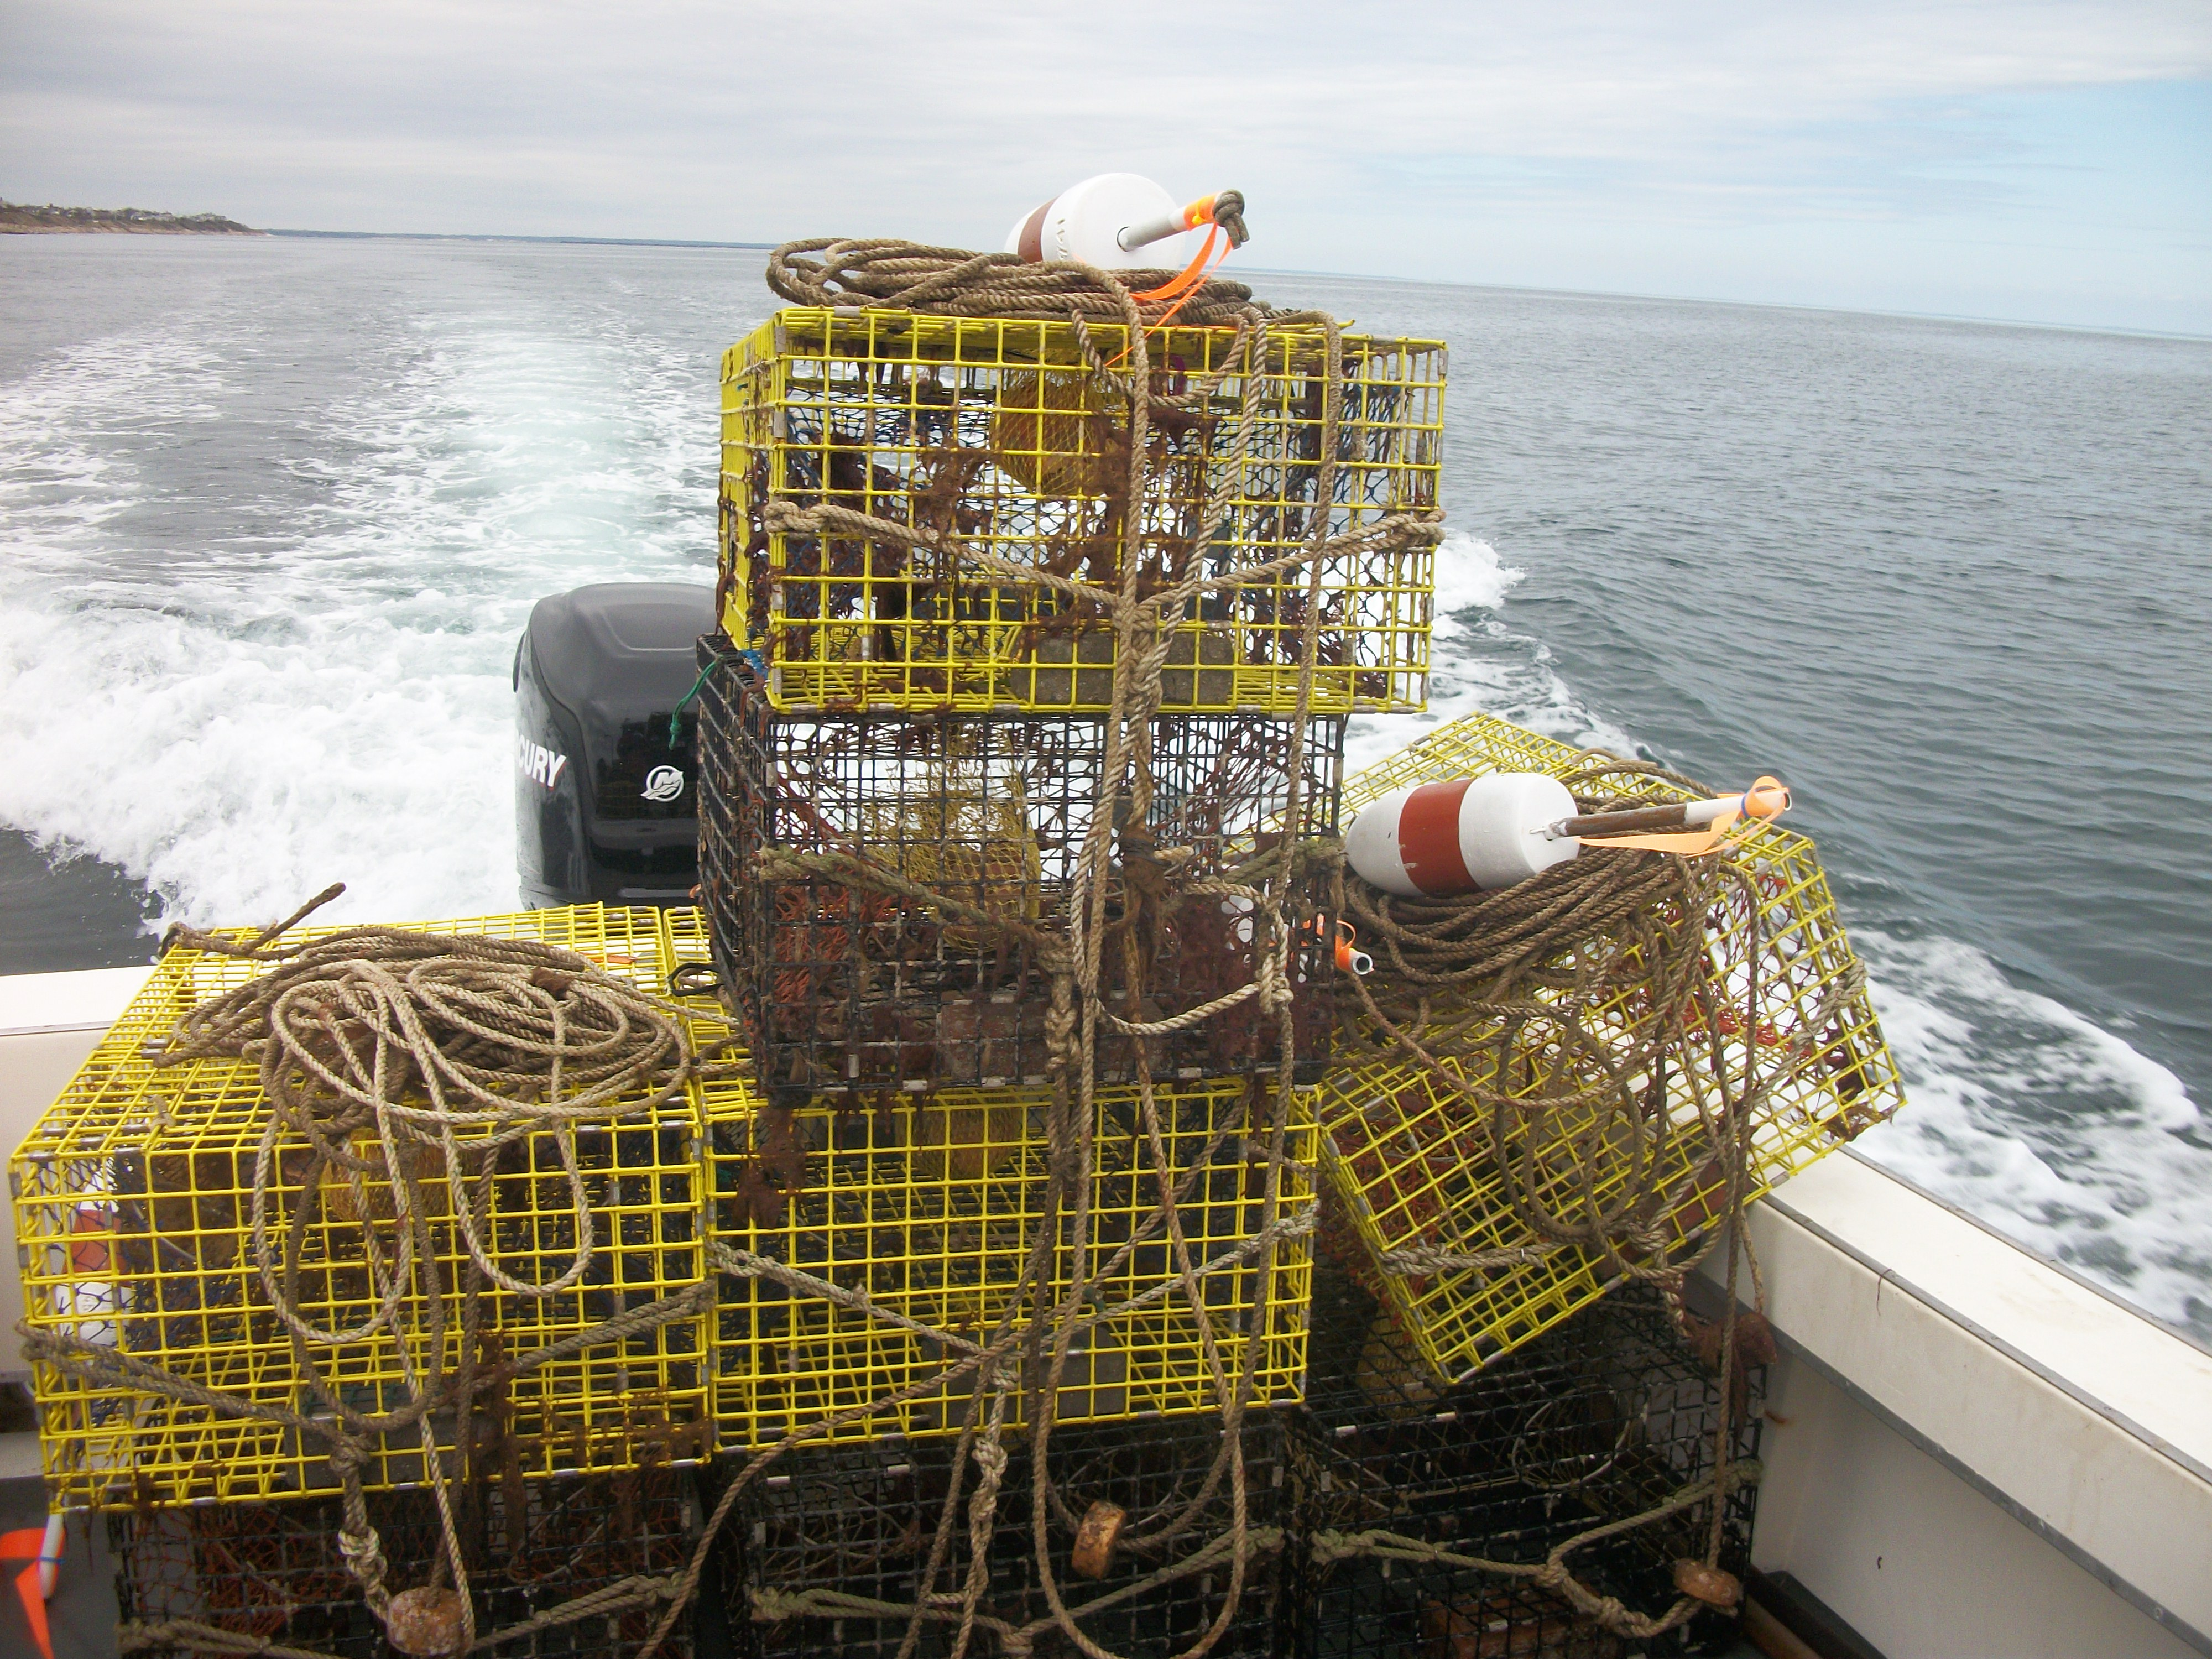 Rent a New England Lobster Trap in Cape Cod Bay